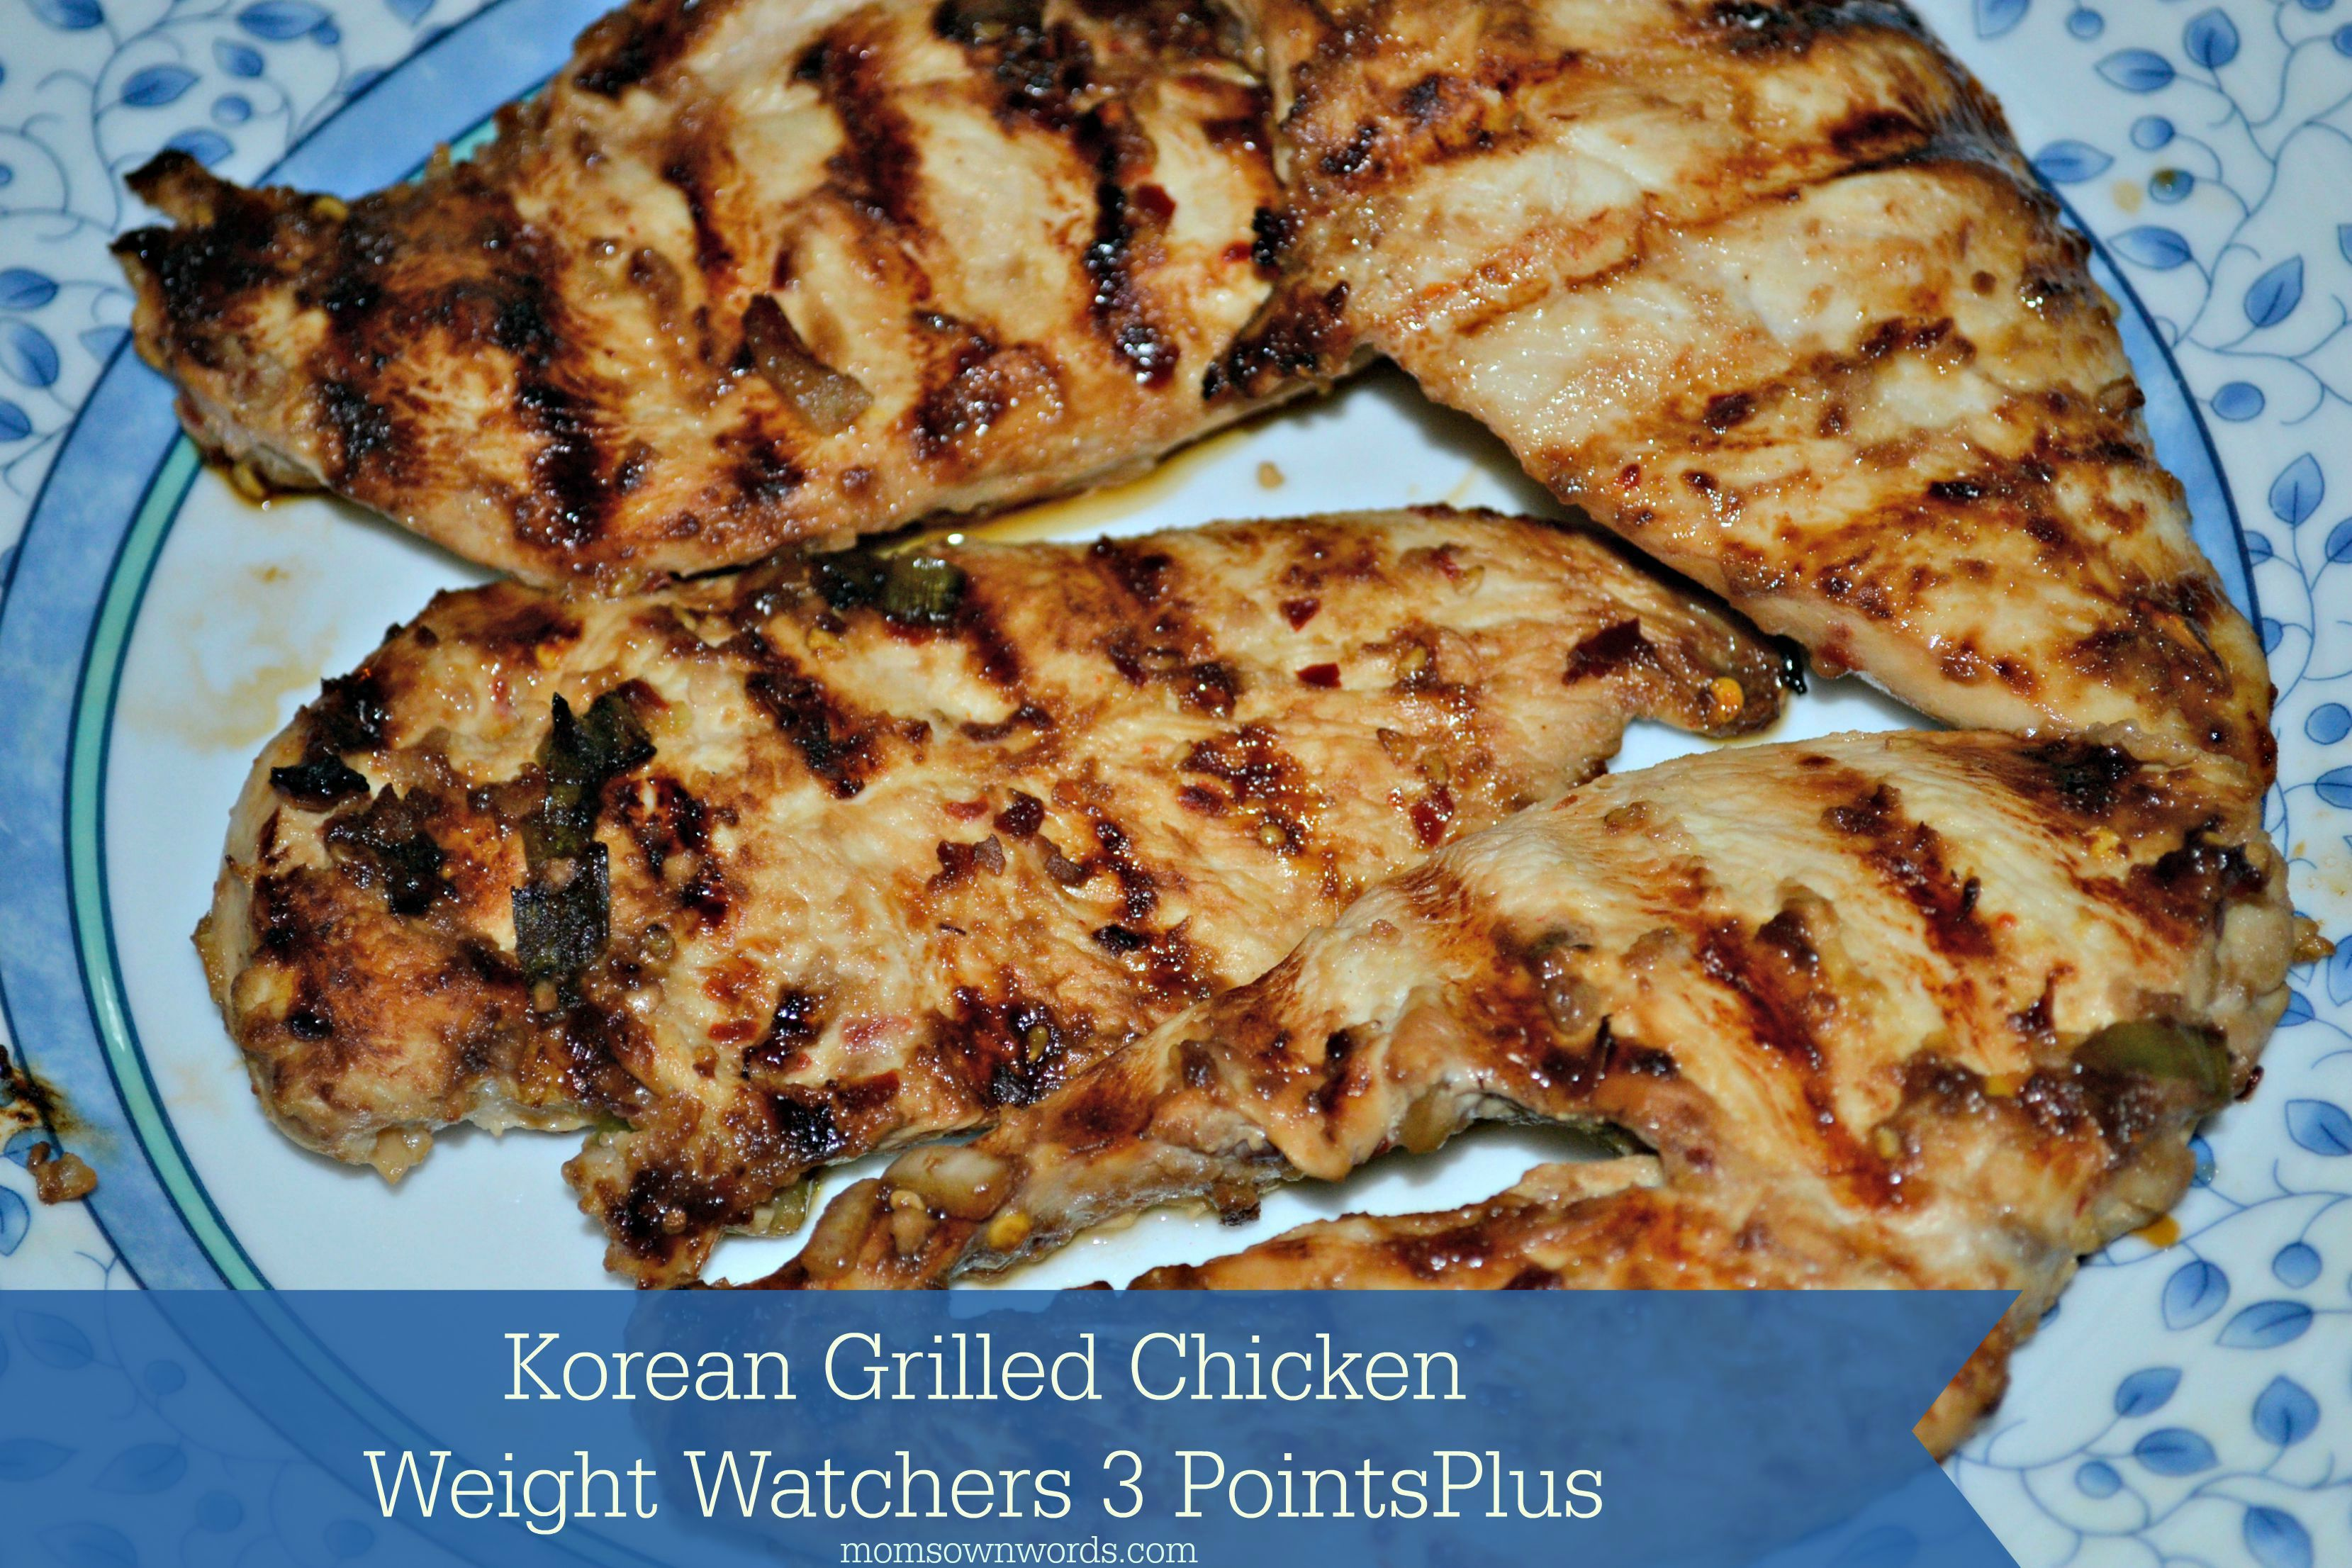 Korean-Grilled-Chicken-Weight-Watchers